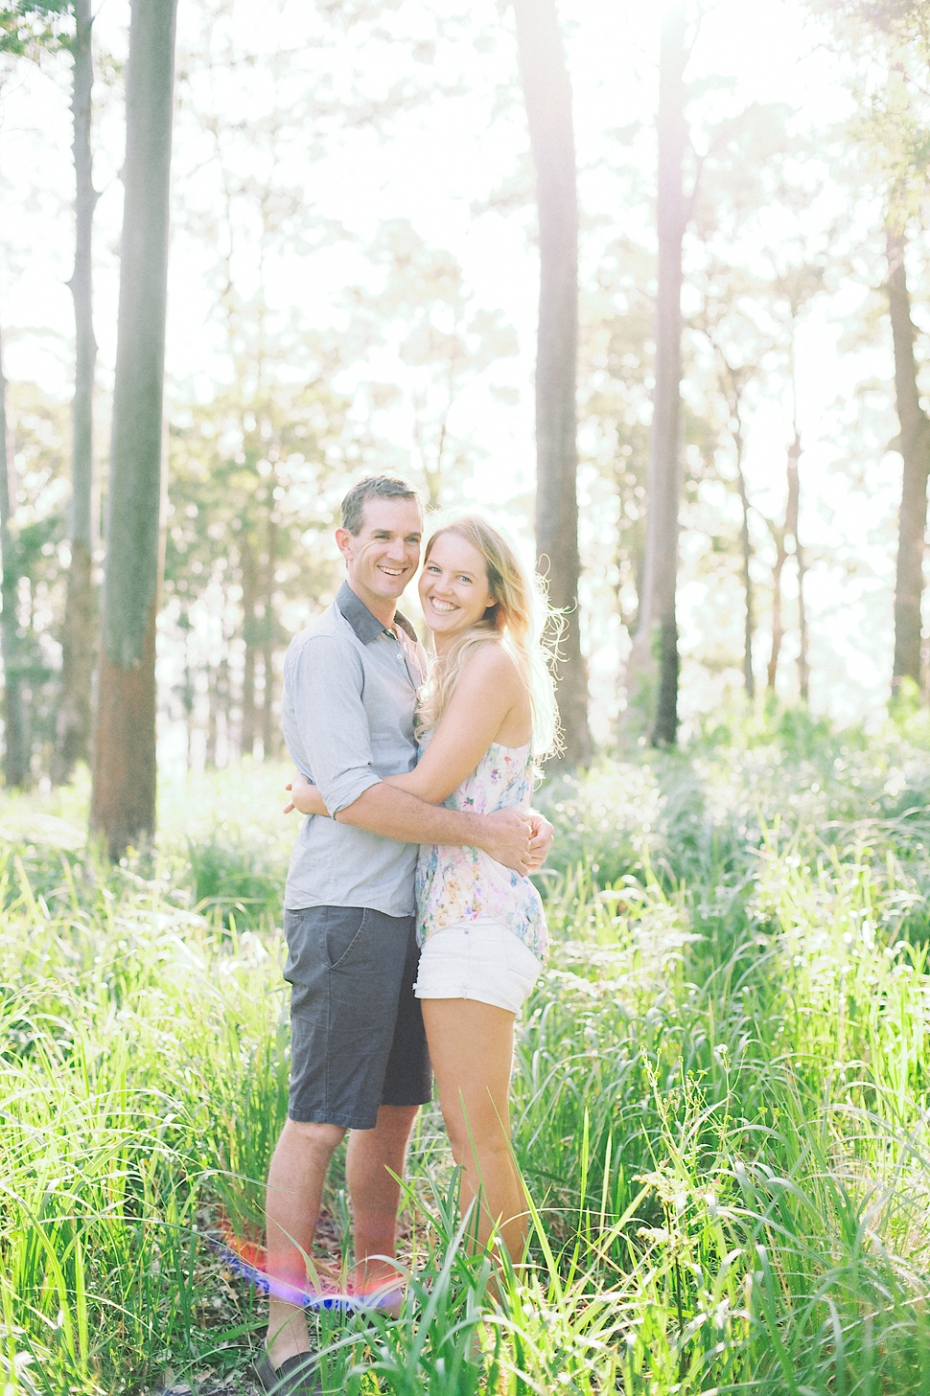 steph-josh-engaged-gold-coast-photographer001